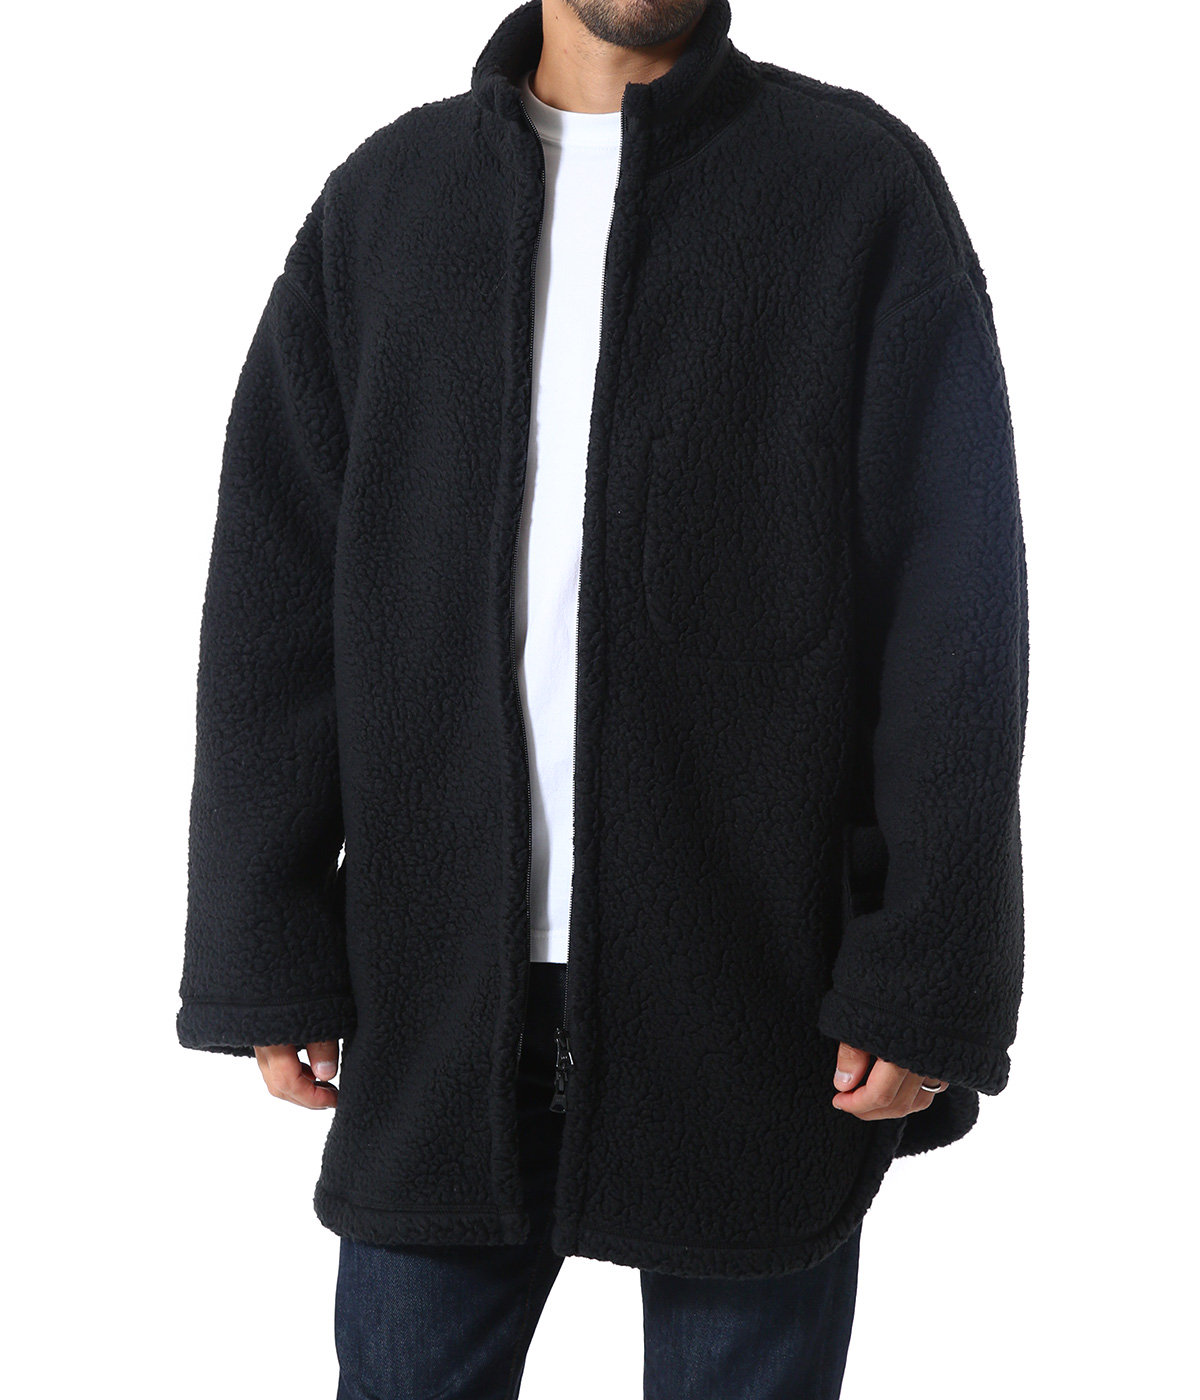 FLEECE ZIP UP SHIRT JACKET